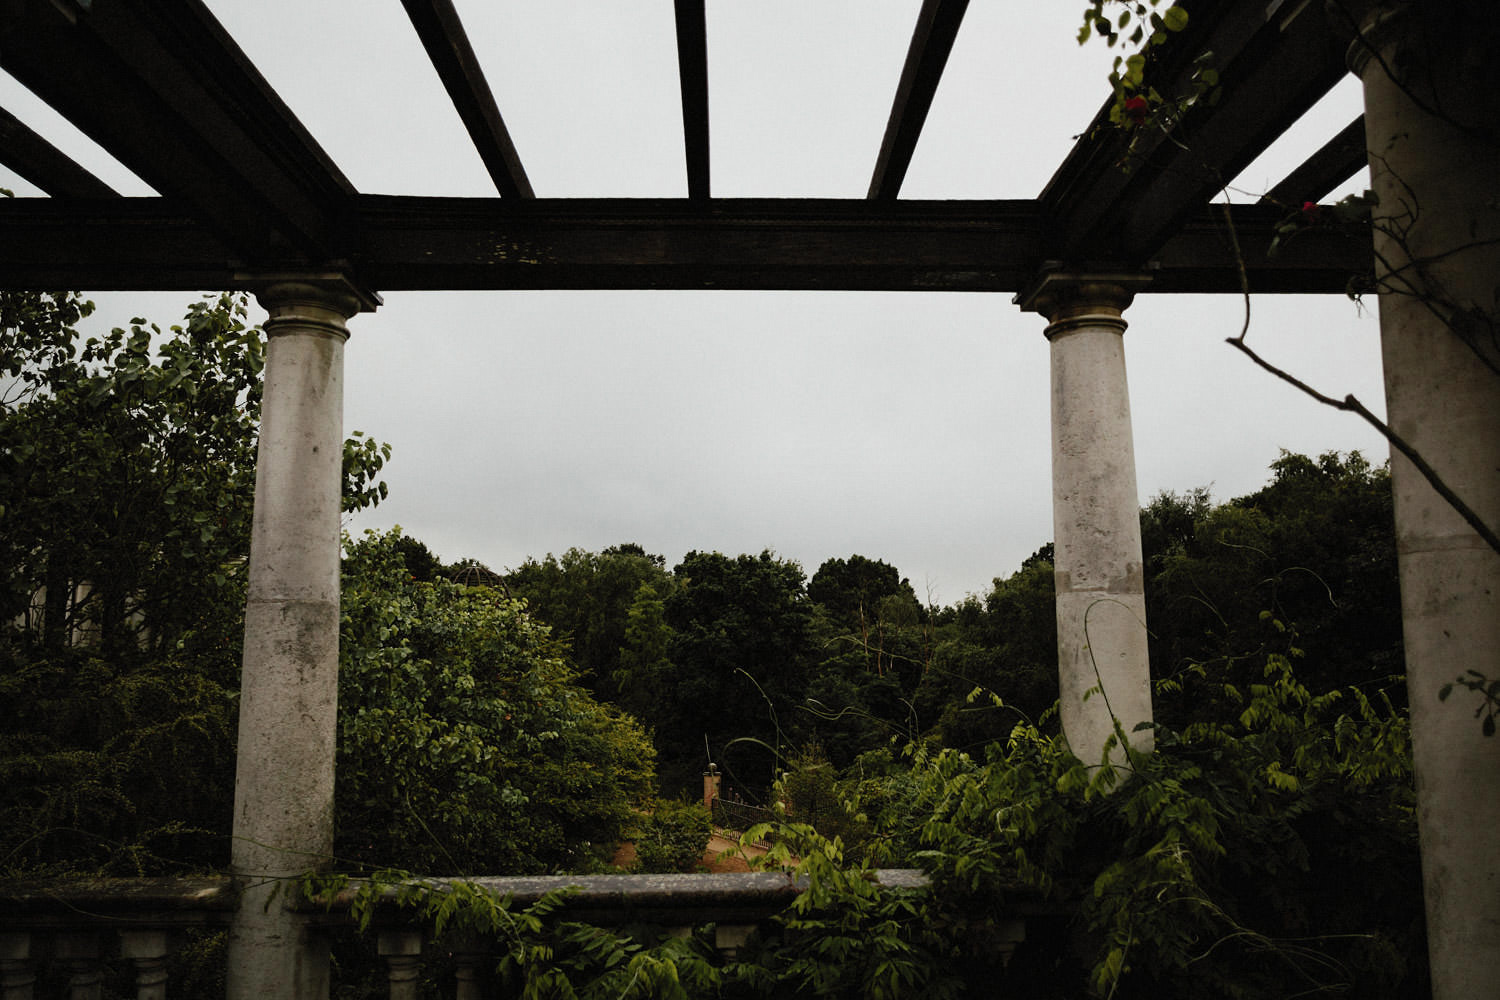 071-the-hill-garden-and-pergola-in-london-view.jpg